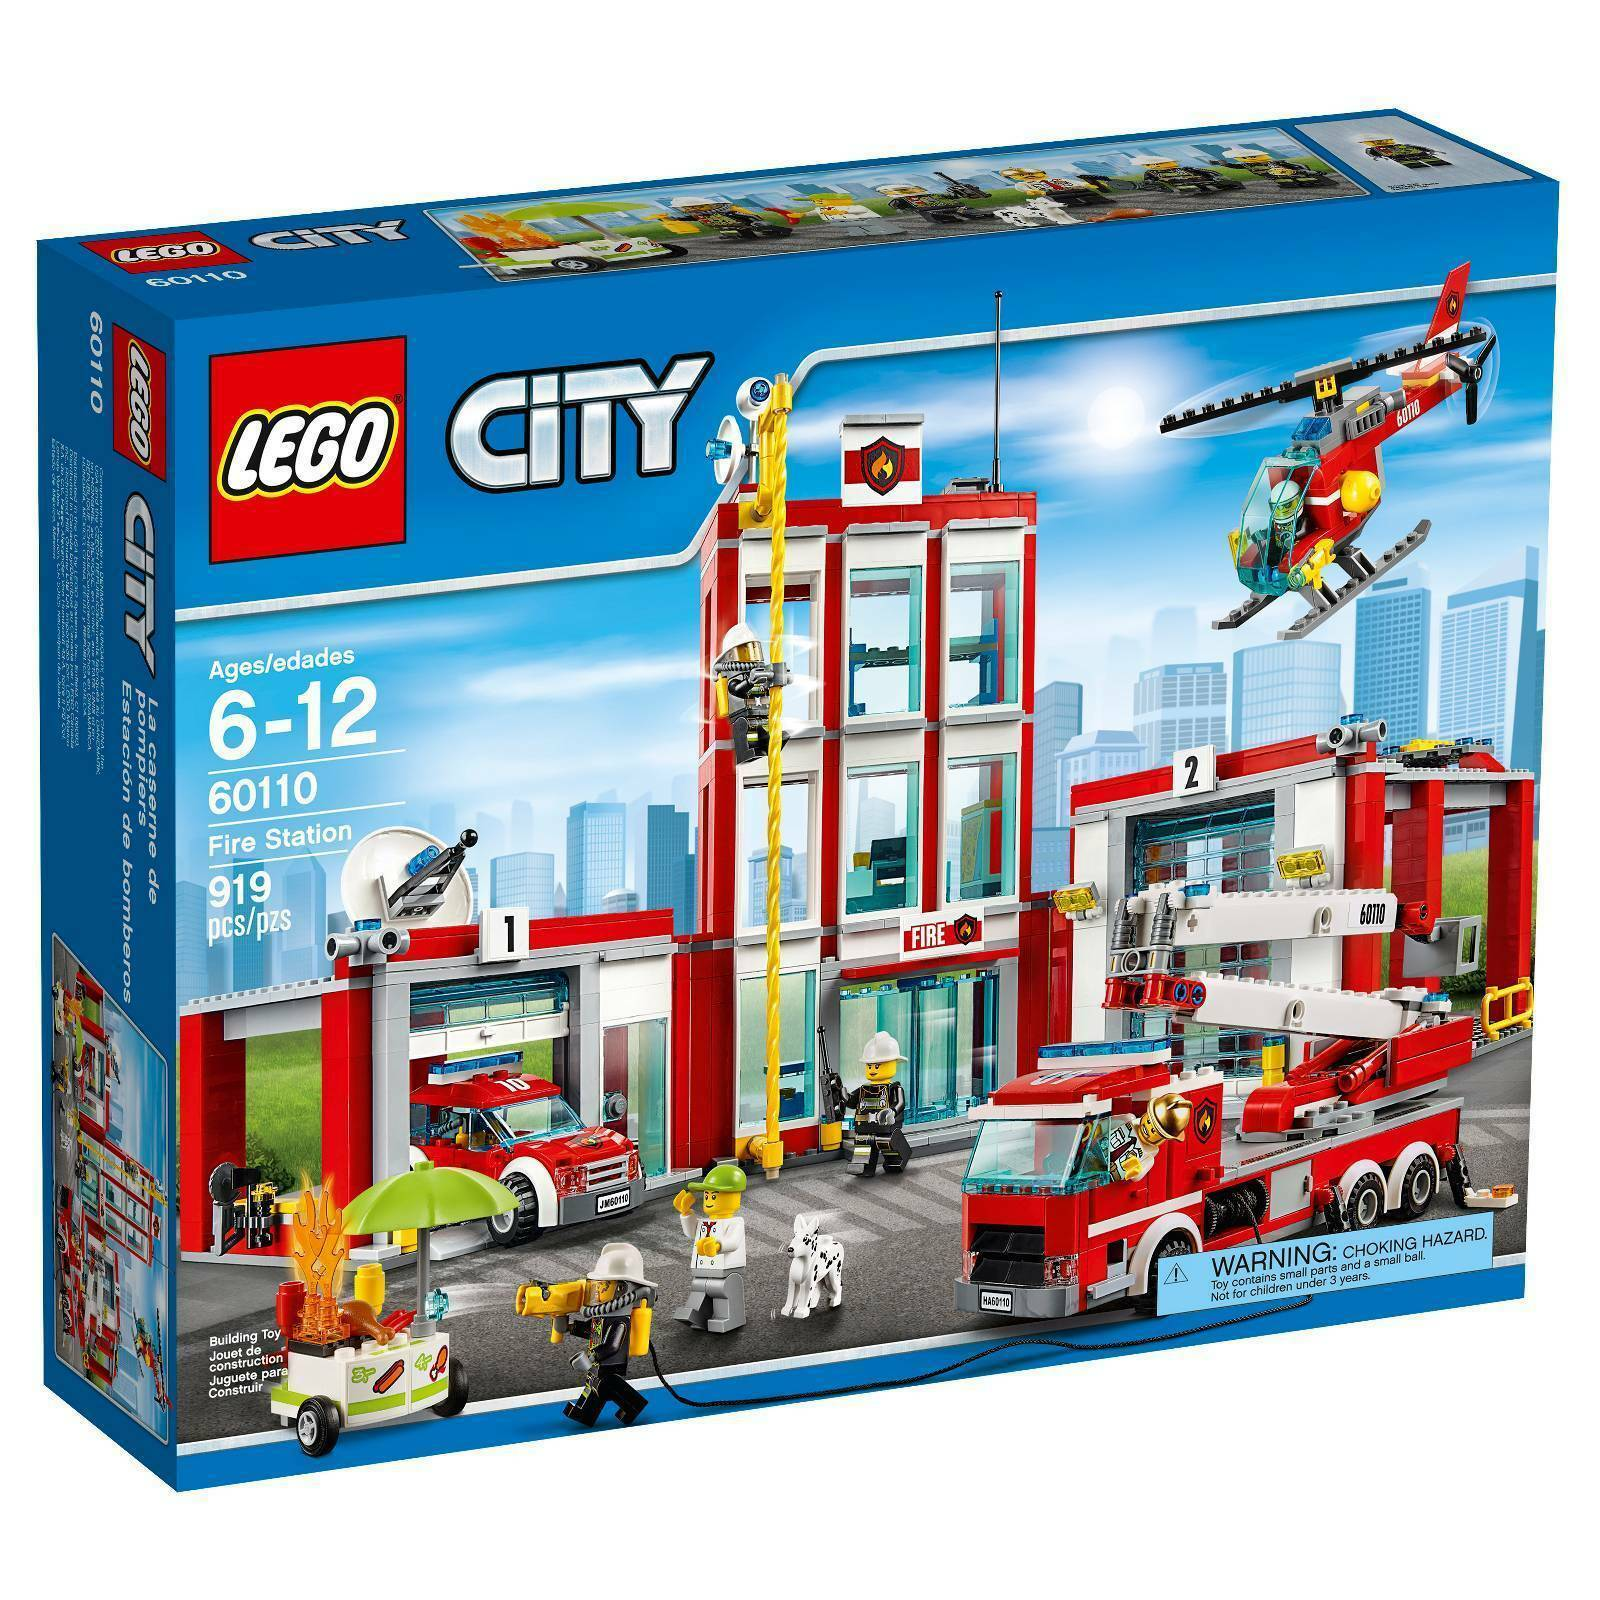 LEGO 60110 City  Fire Station Discontinued  haute qualité